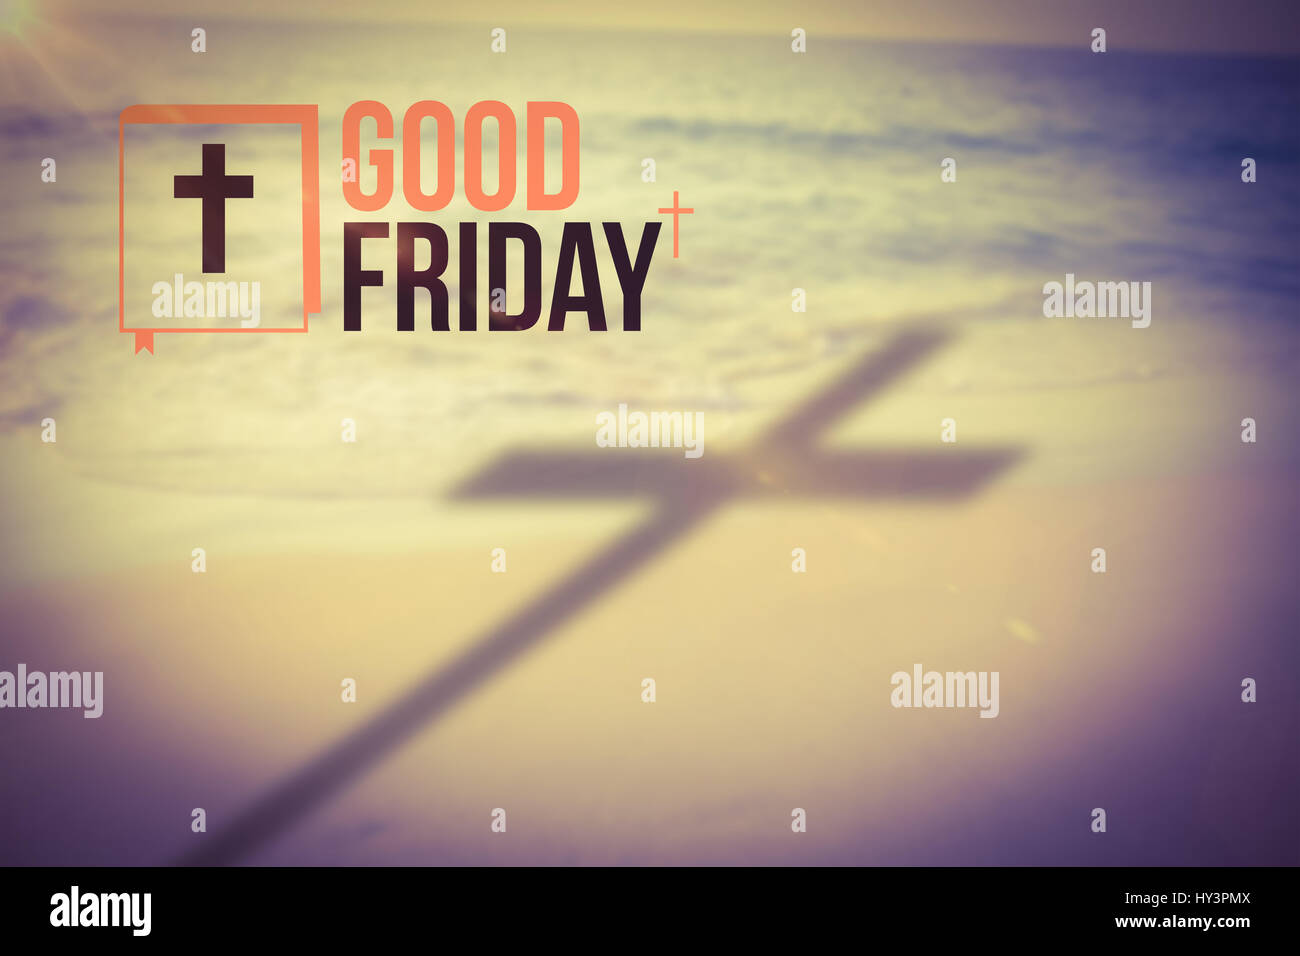 good friday logo against beach during sunset - Stock Image